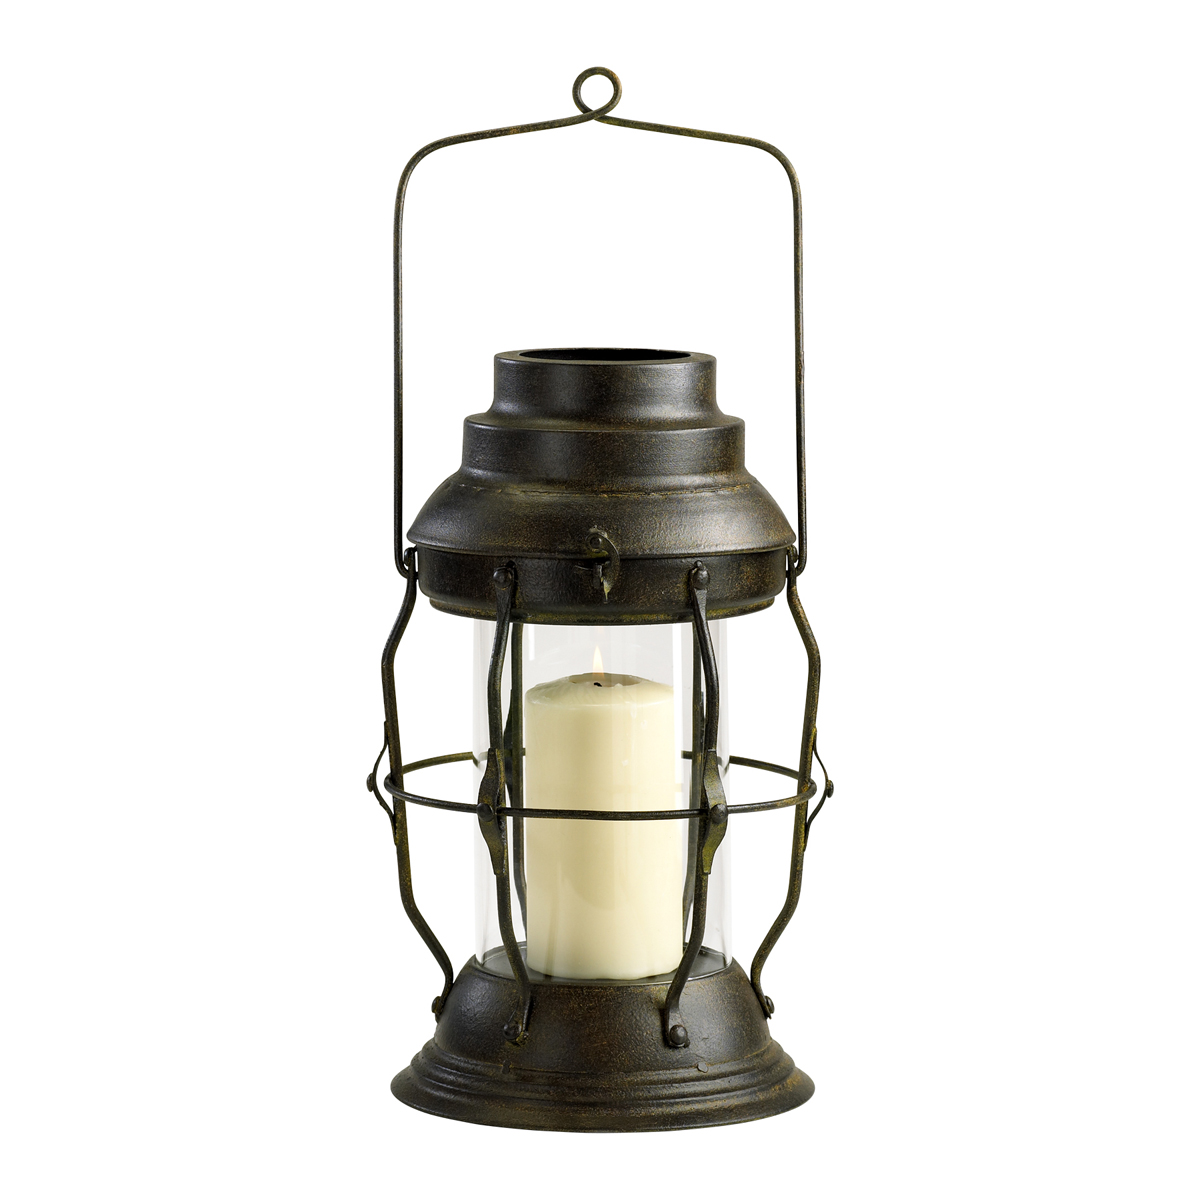 hanging candle holders - lighting fixtures, lights, and home lighting